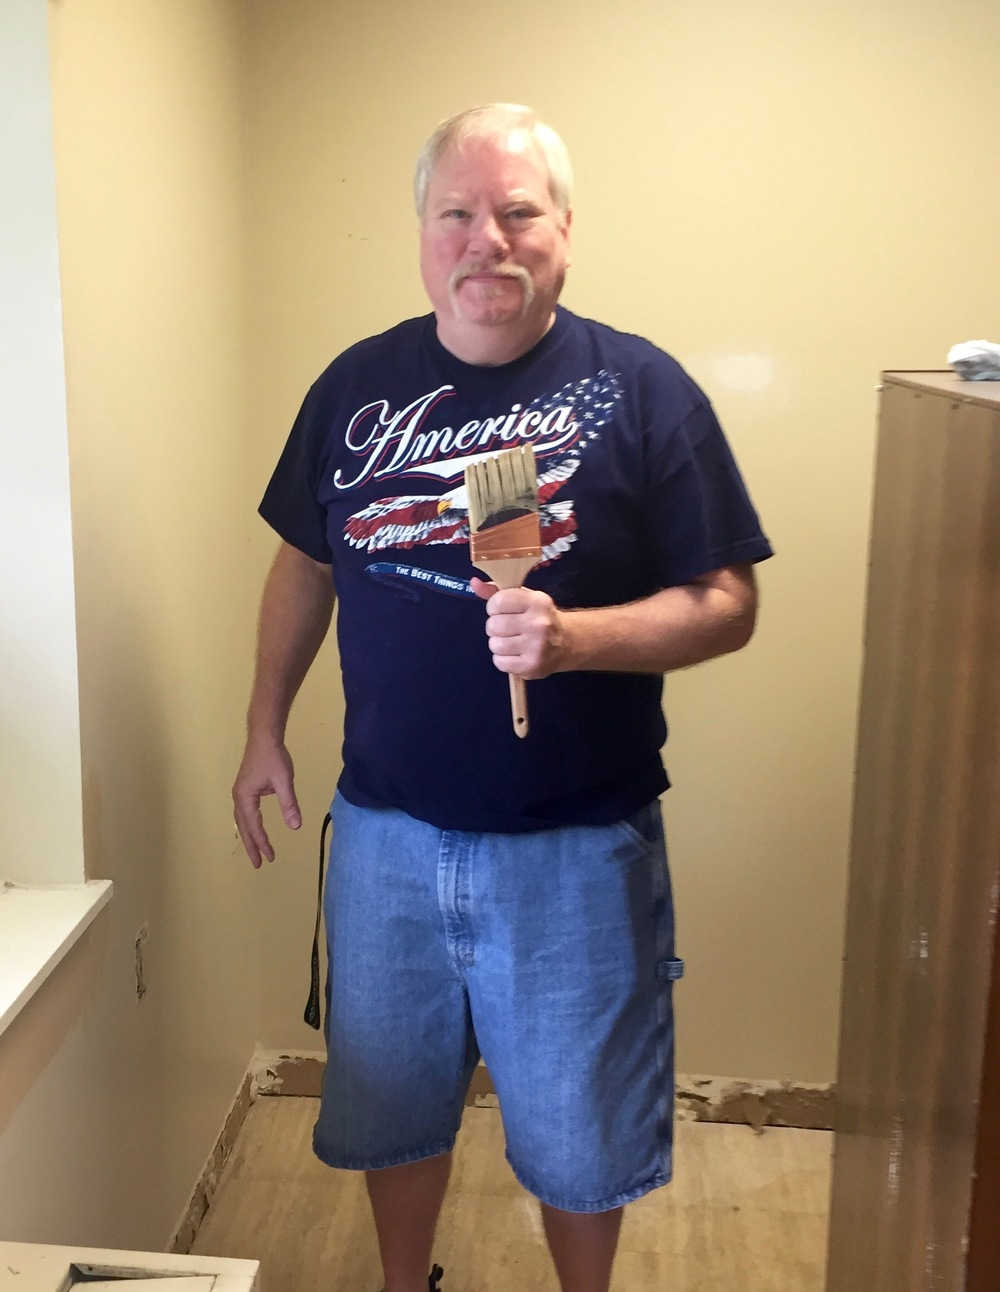 Jim, an ACC member, helps paint the Lockwood House library, a recent service project completed as a part of our partnership there.